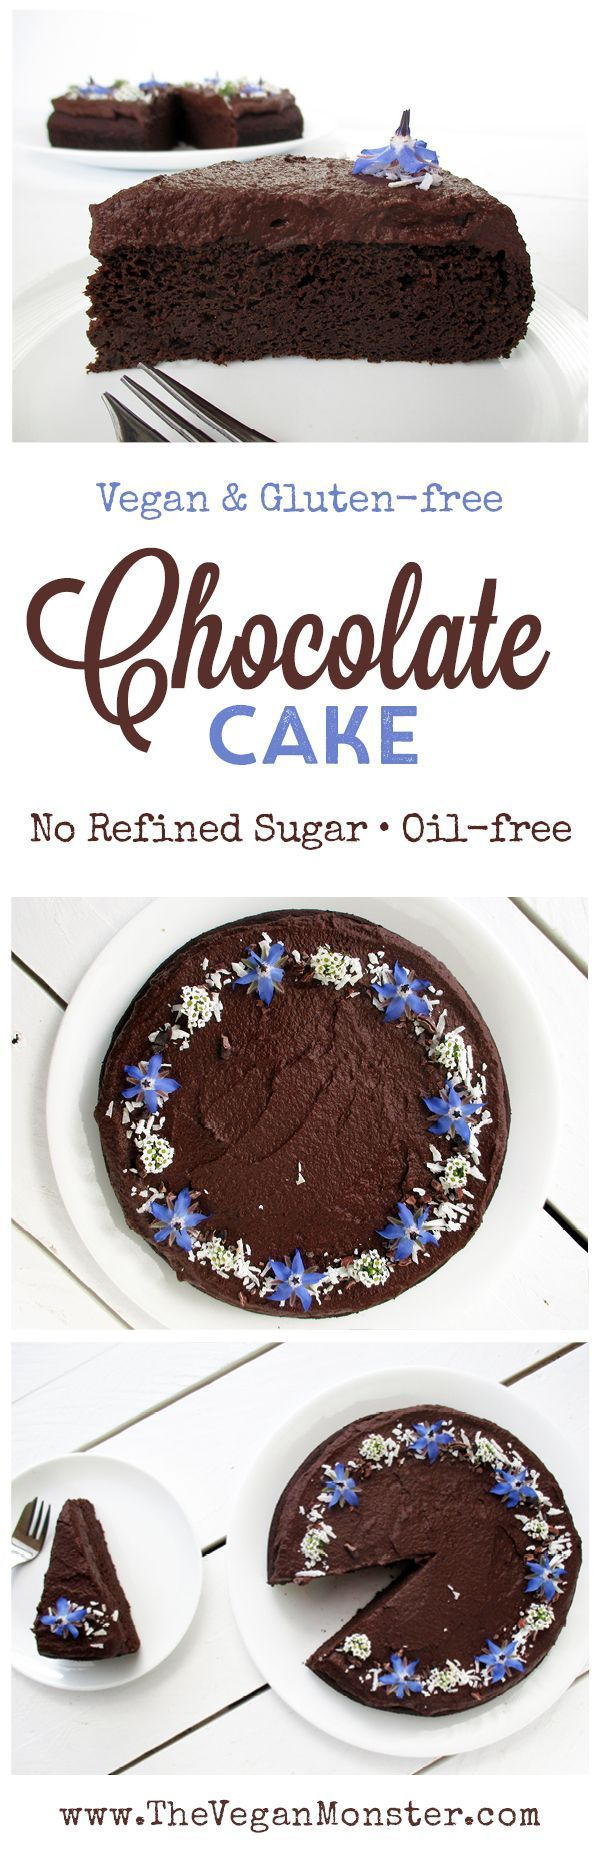 Vegan Gluten-free Oil-free Refined Sugar Free Soy-free Easy Chocolate Cake Recip... -